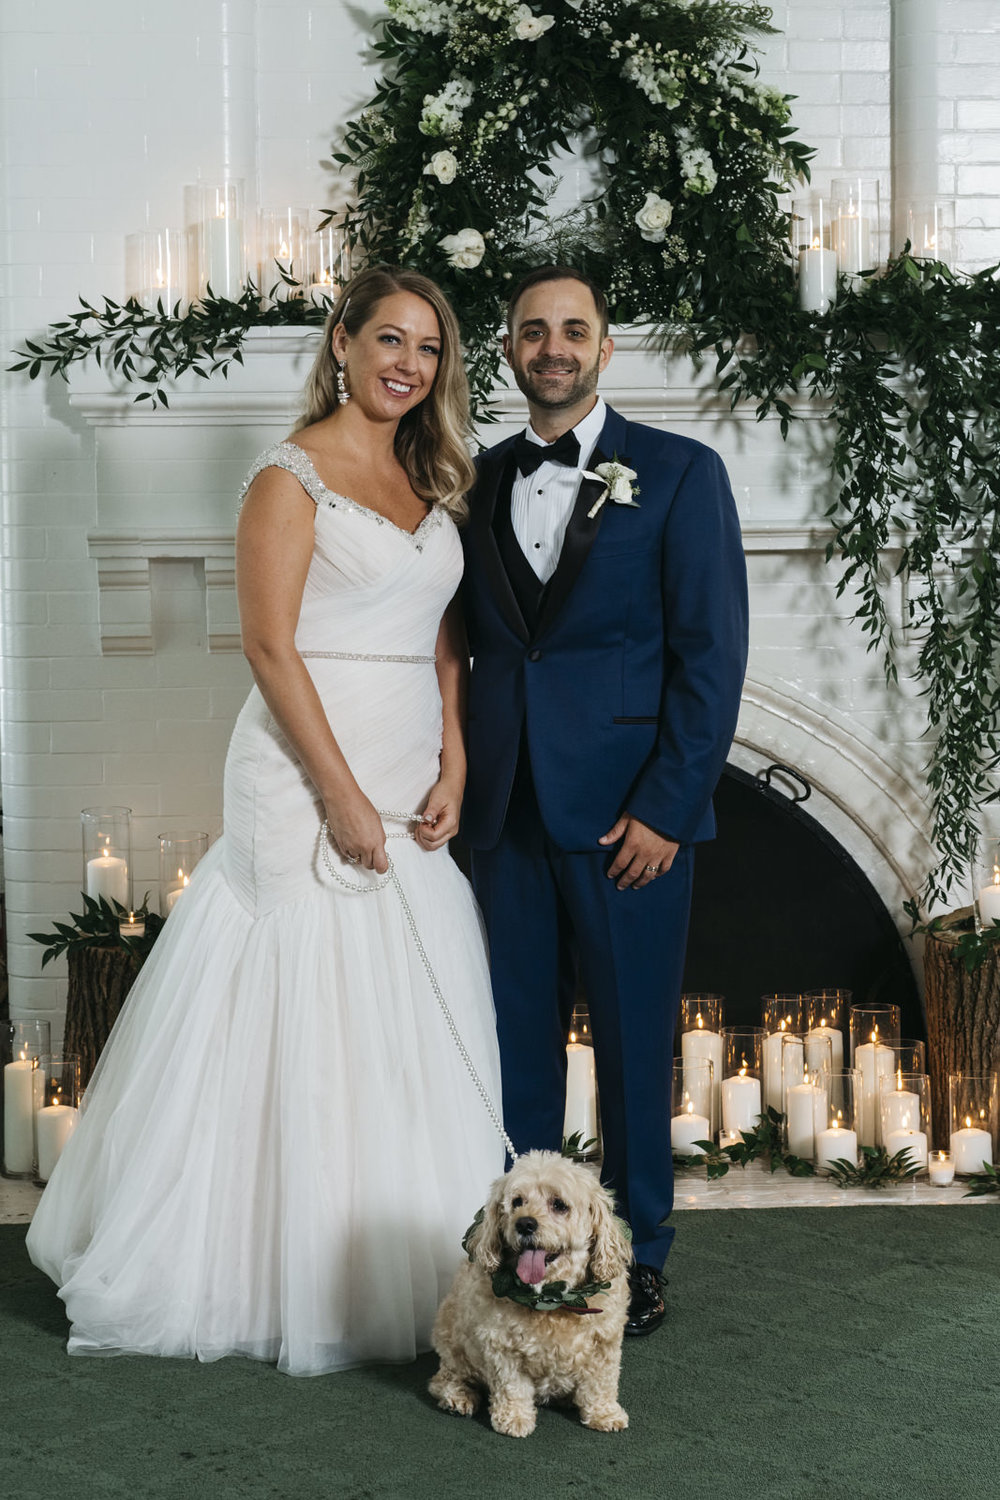 Bride and groom with their dog pose for a picture after their wedding ceremony.